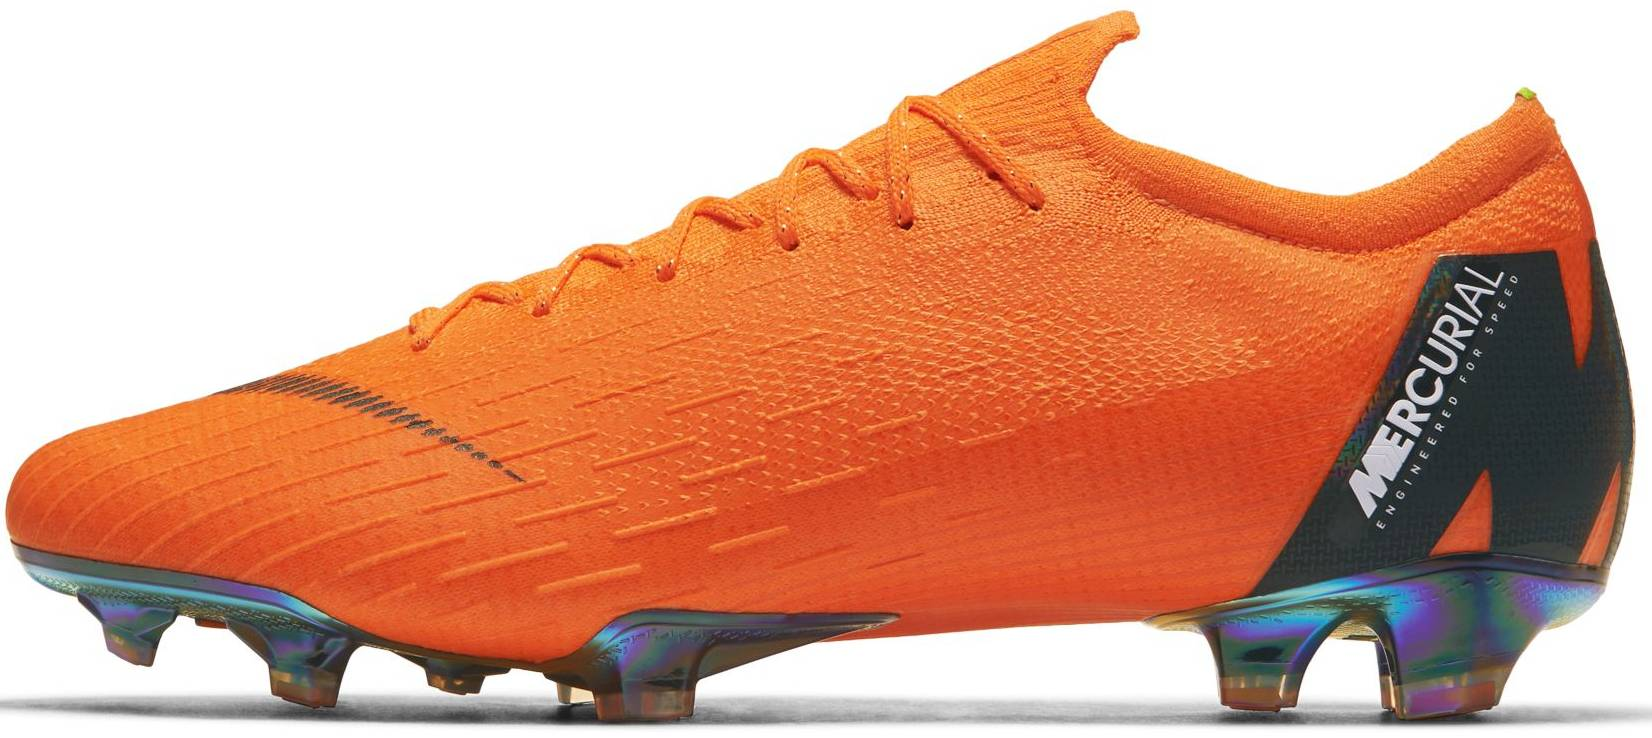 Lluvioso Si Sacrificio  ماء التشاور قصب first nike mercurial vapor - peoples-yoga.com